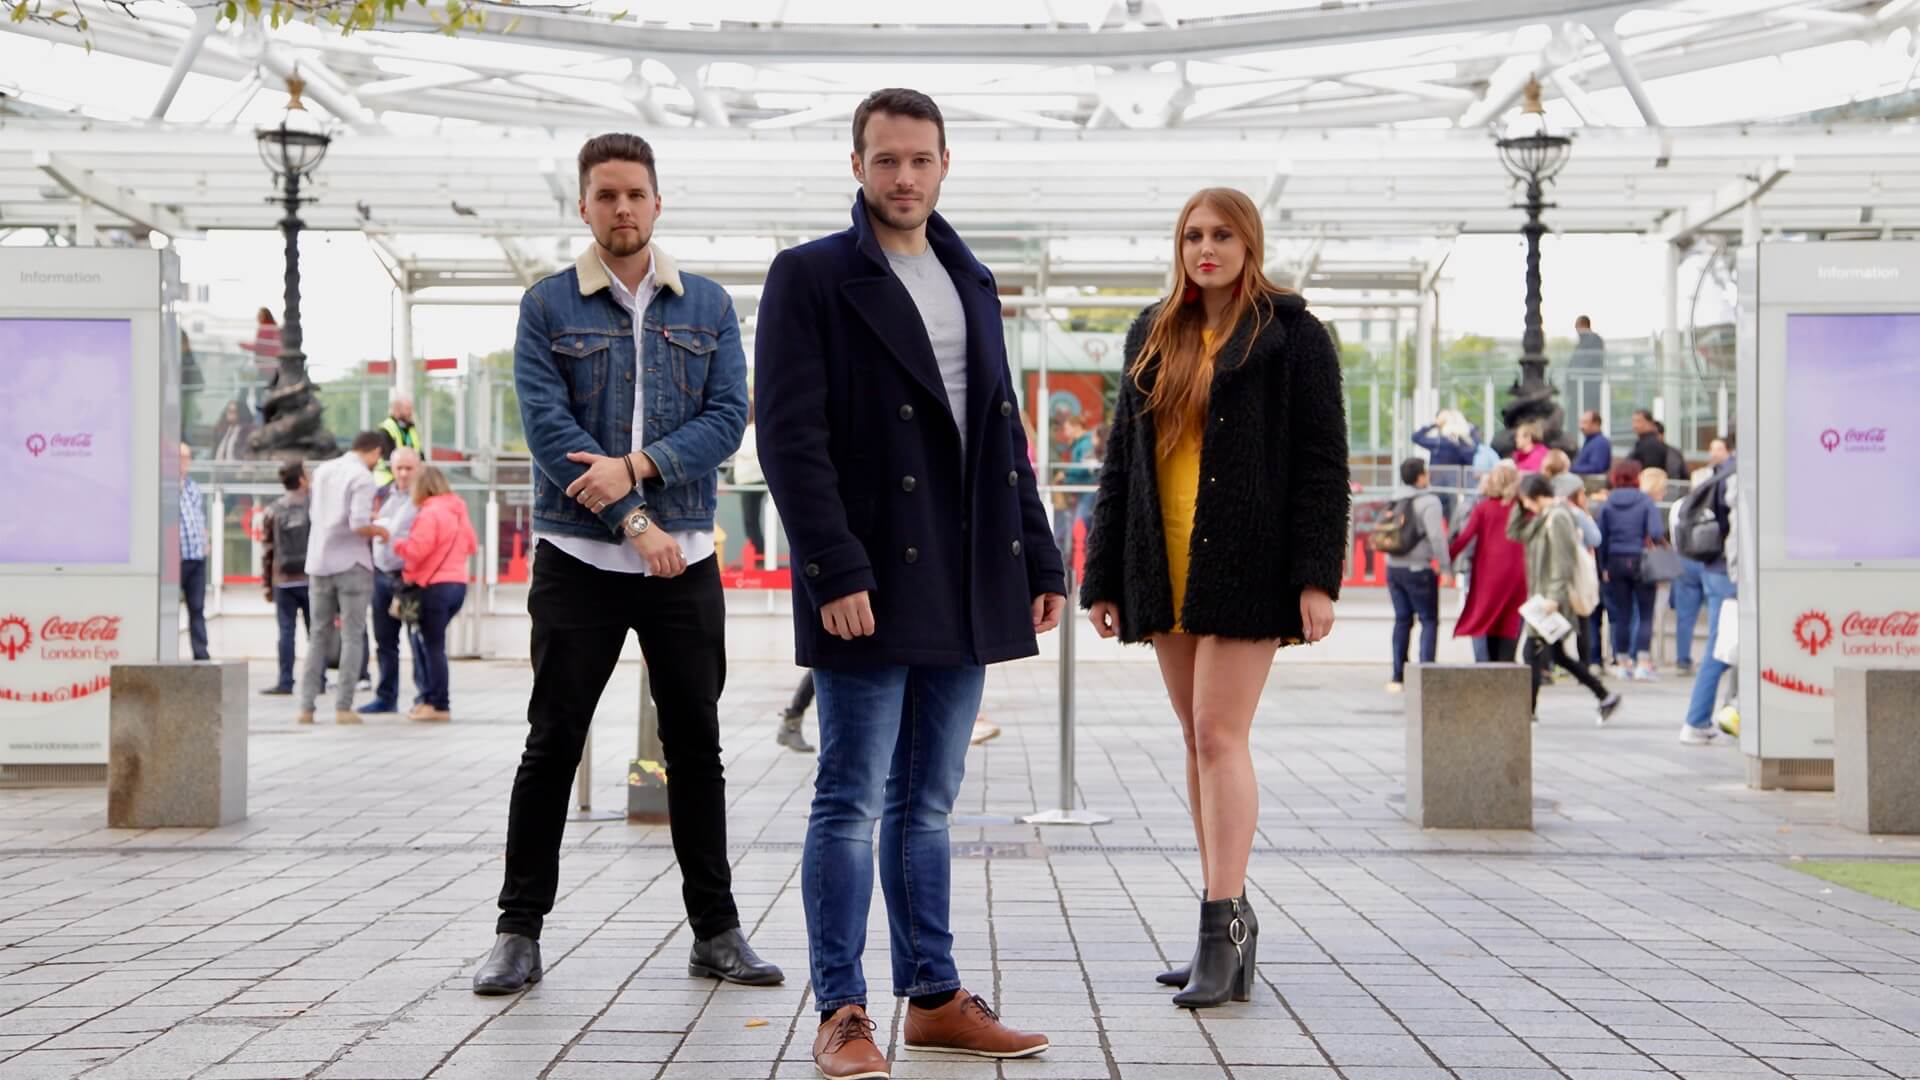 Manchester mind reader and hypnotist stood with two other people ready for channel 4 debut